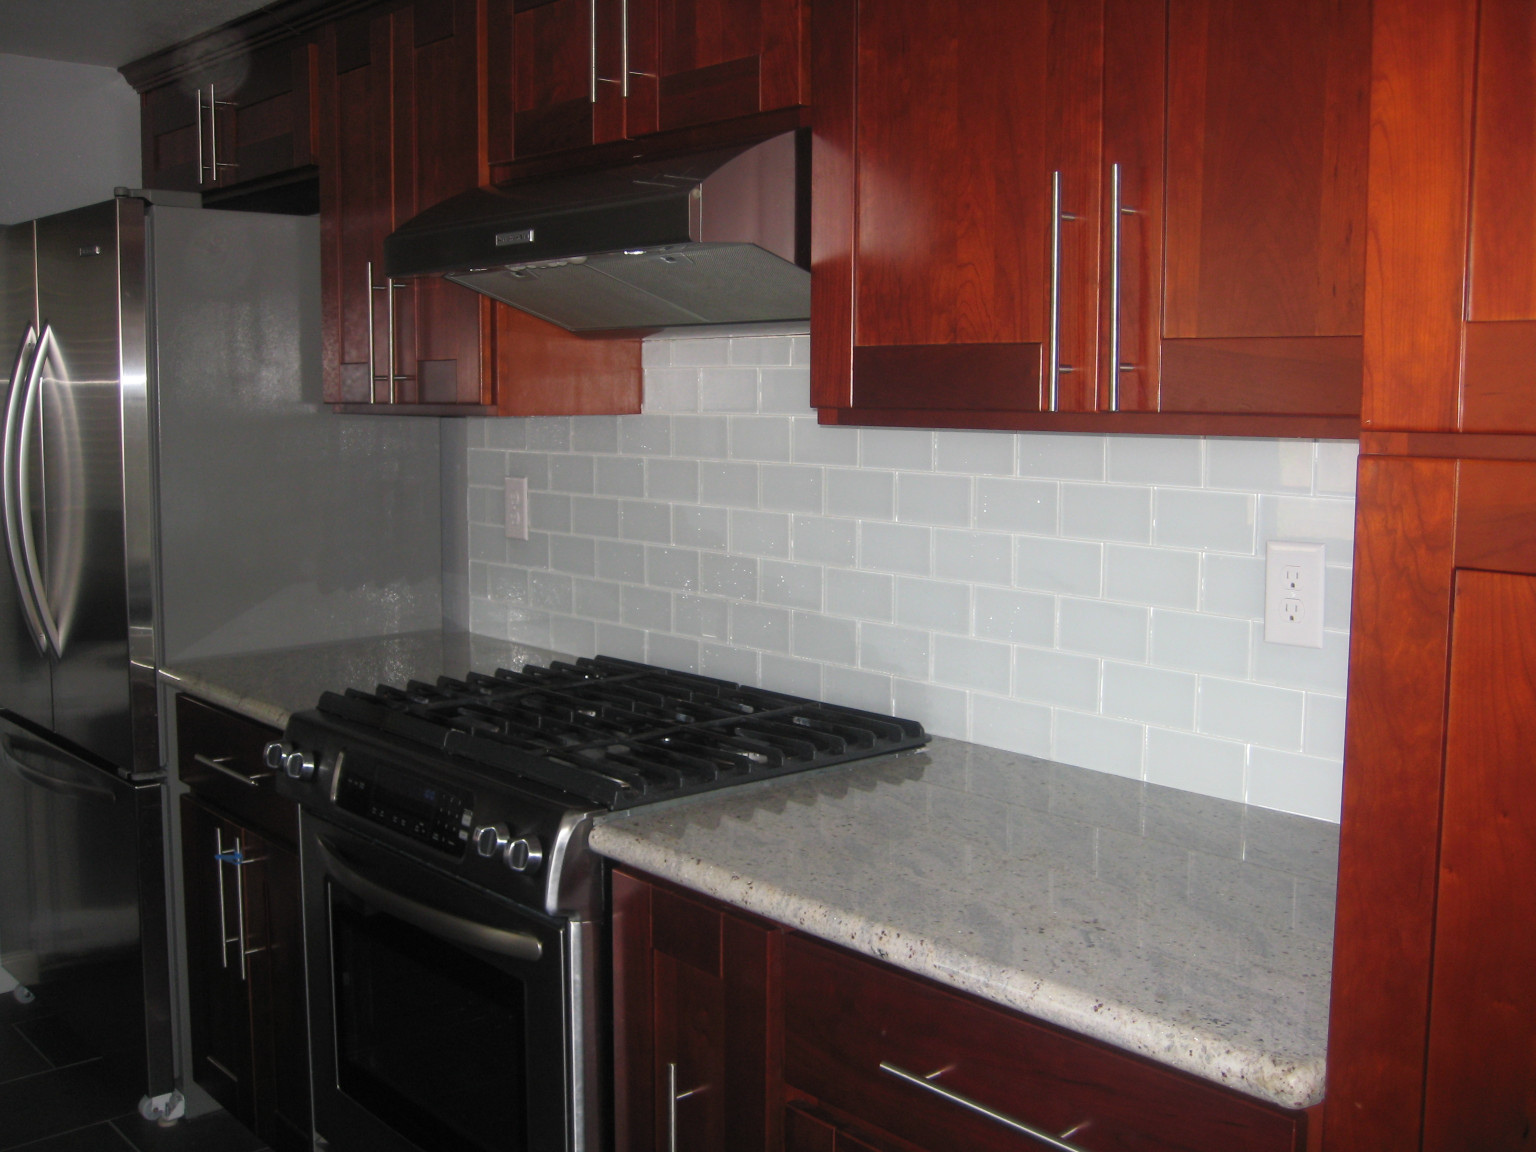 Kitchen Backsplash Tiles  White Glass Subway Tile Subway Tile Outlet